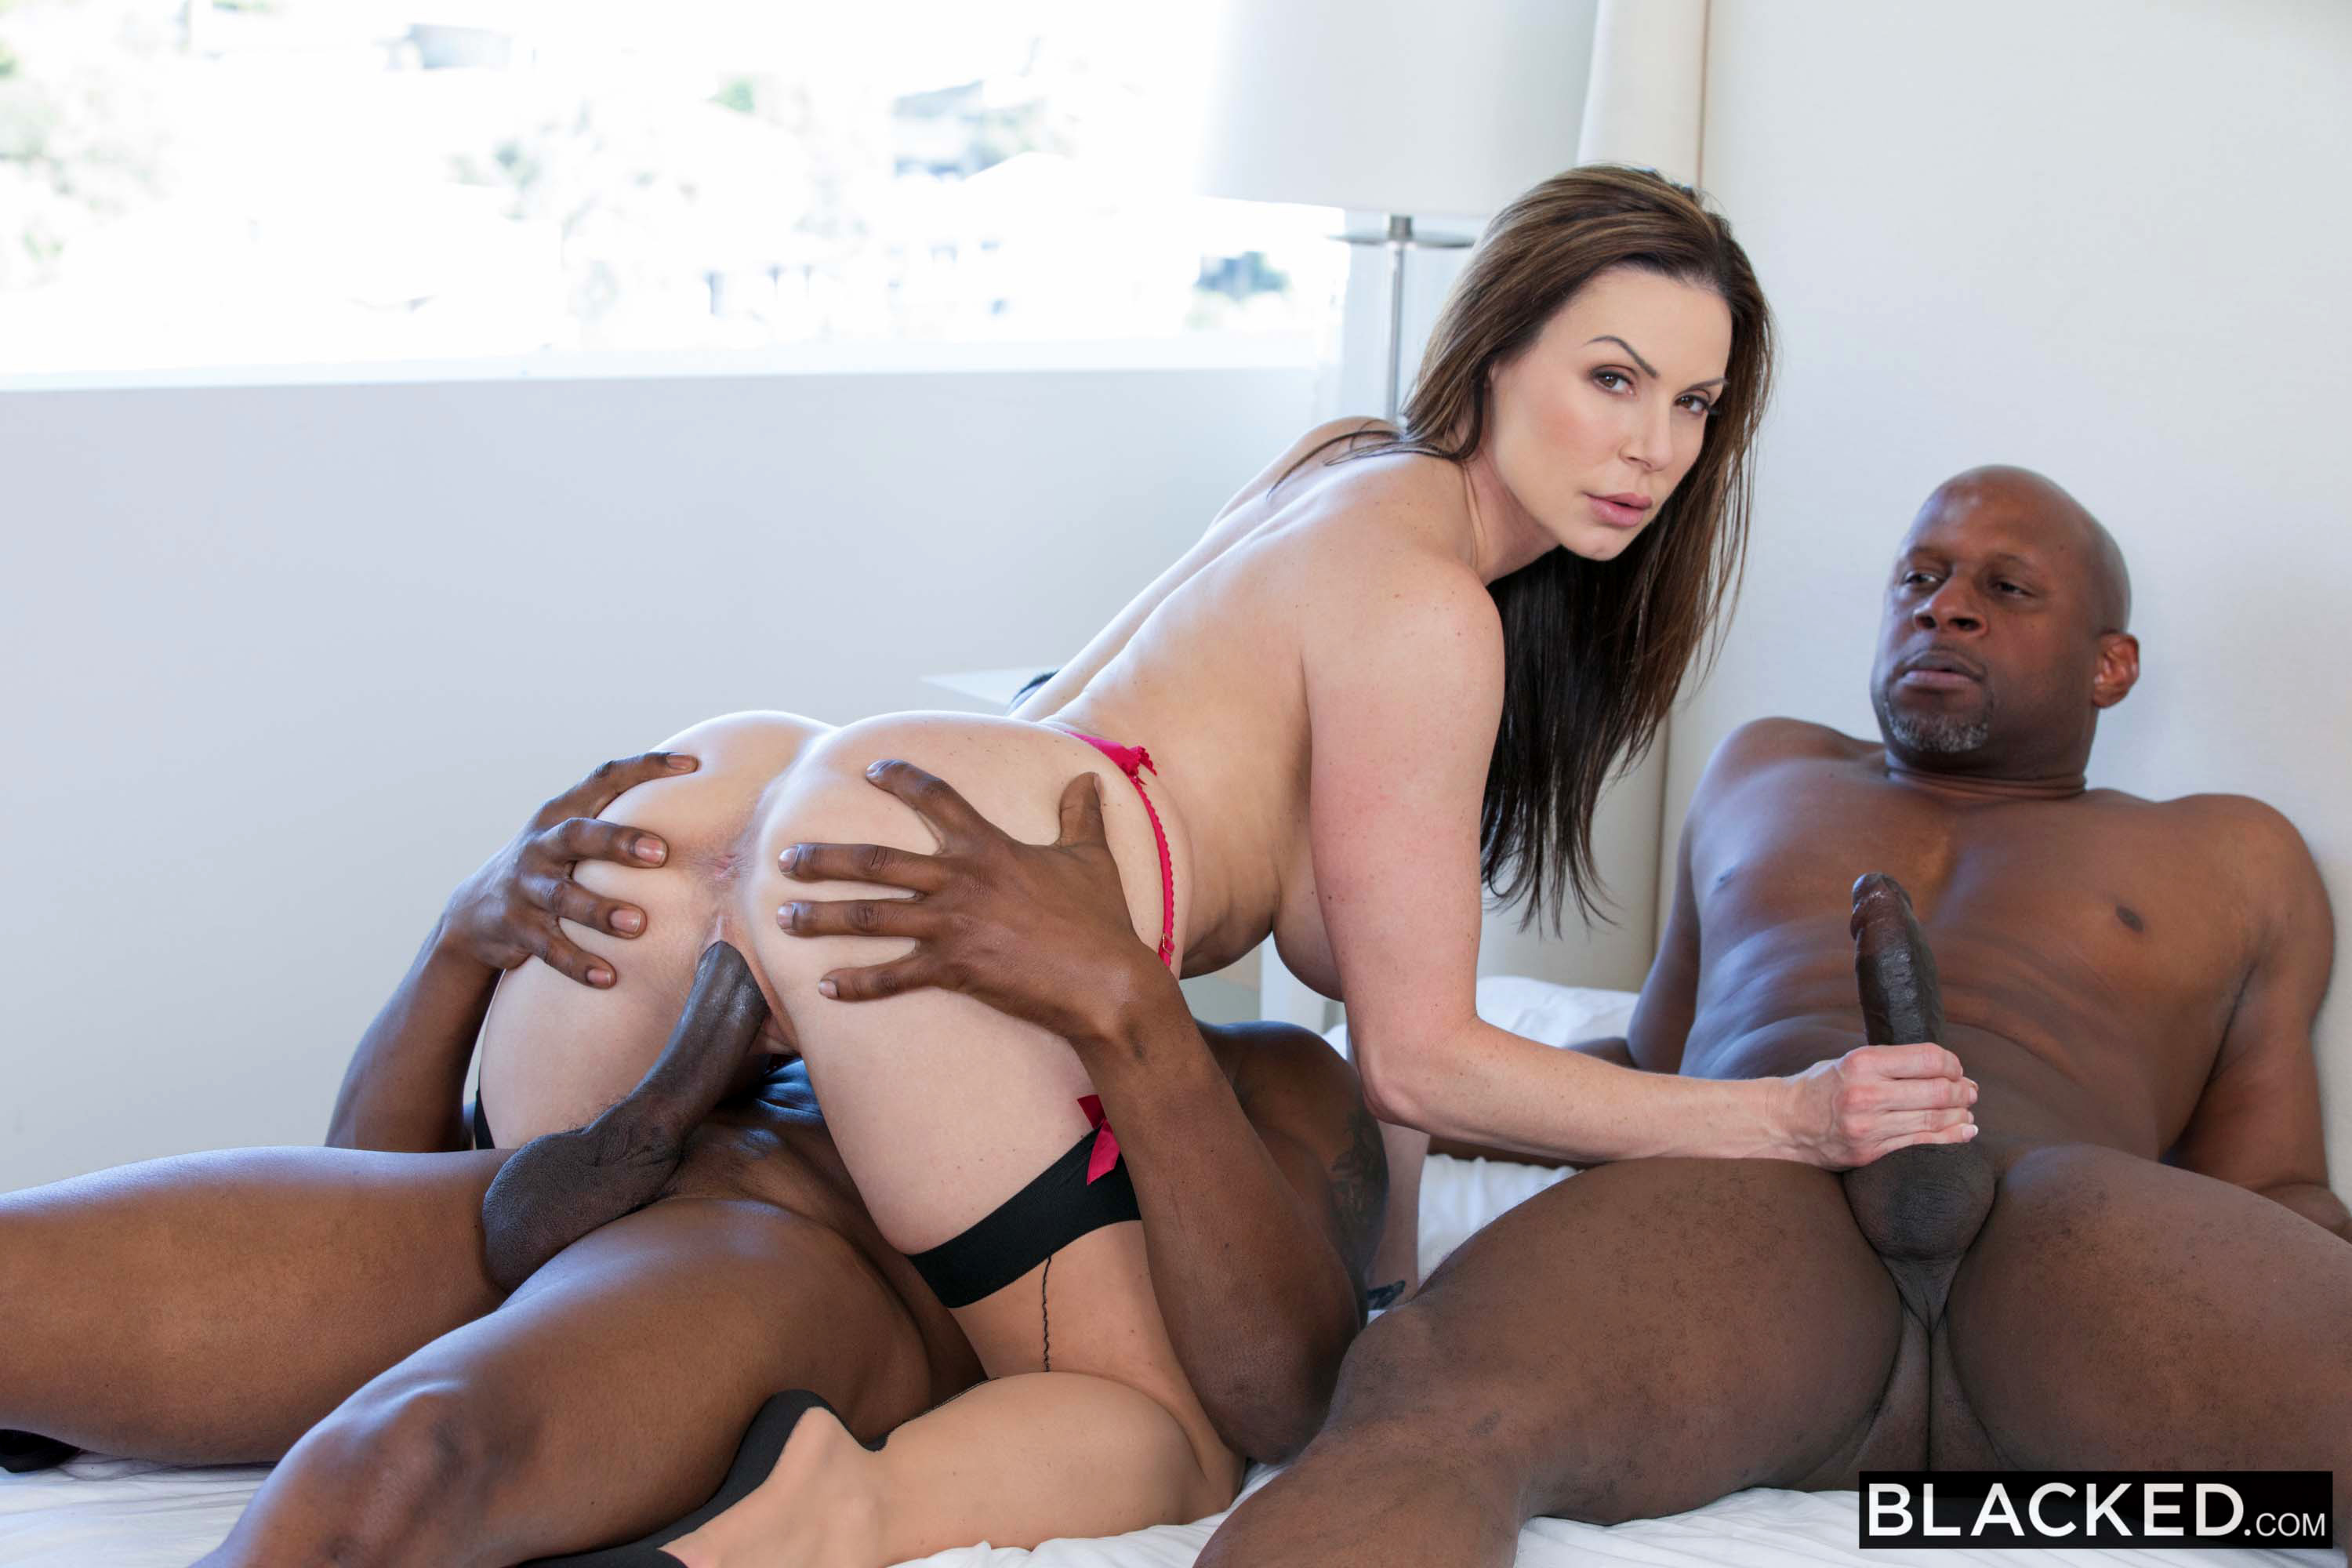 Kendra Lust In Cheated On My Husband And Loved It - 4K -6657